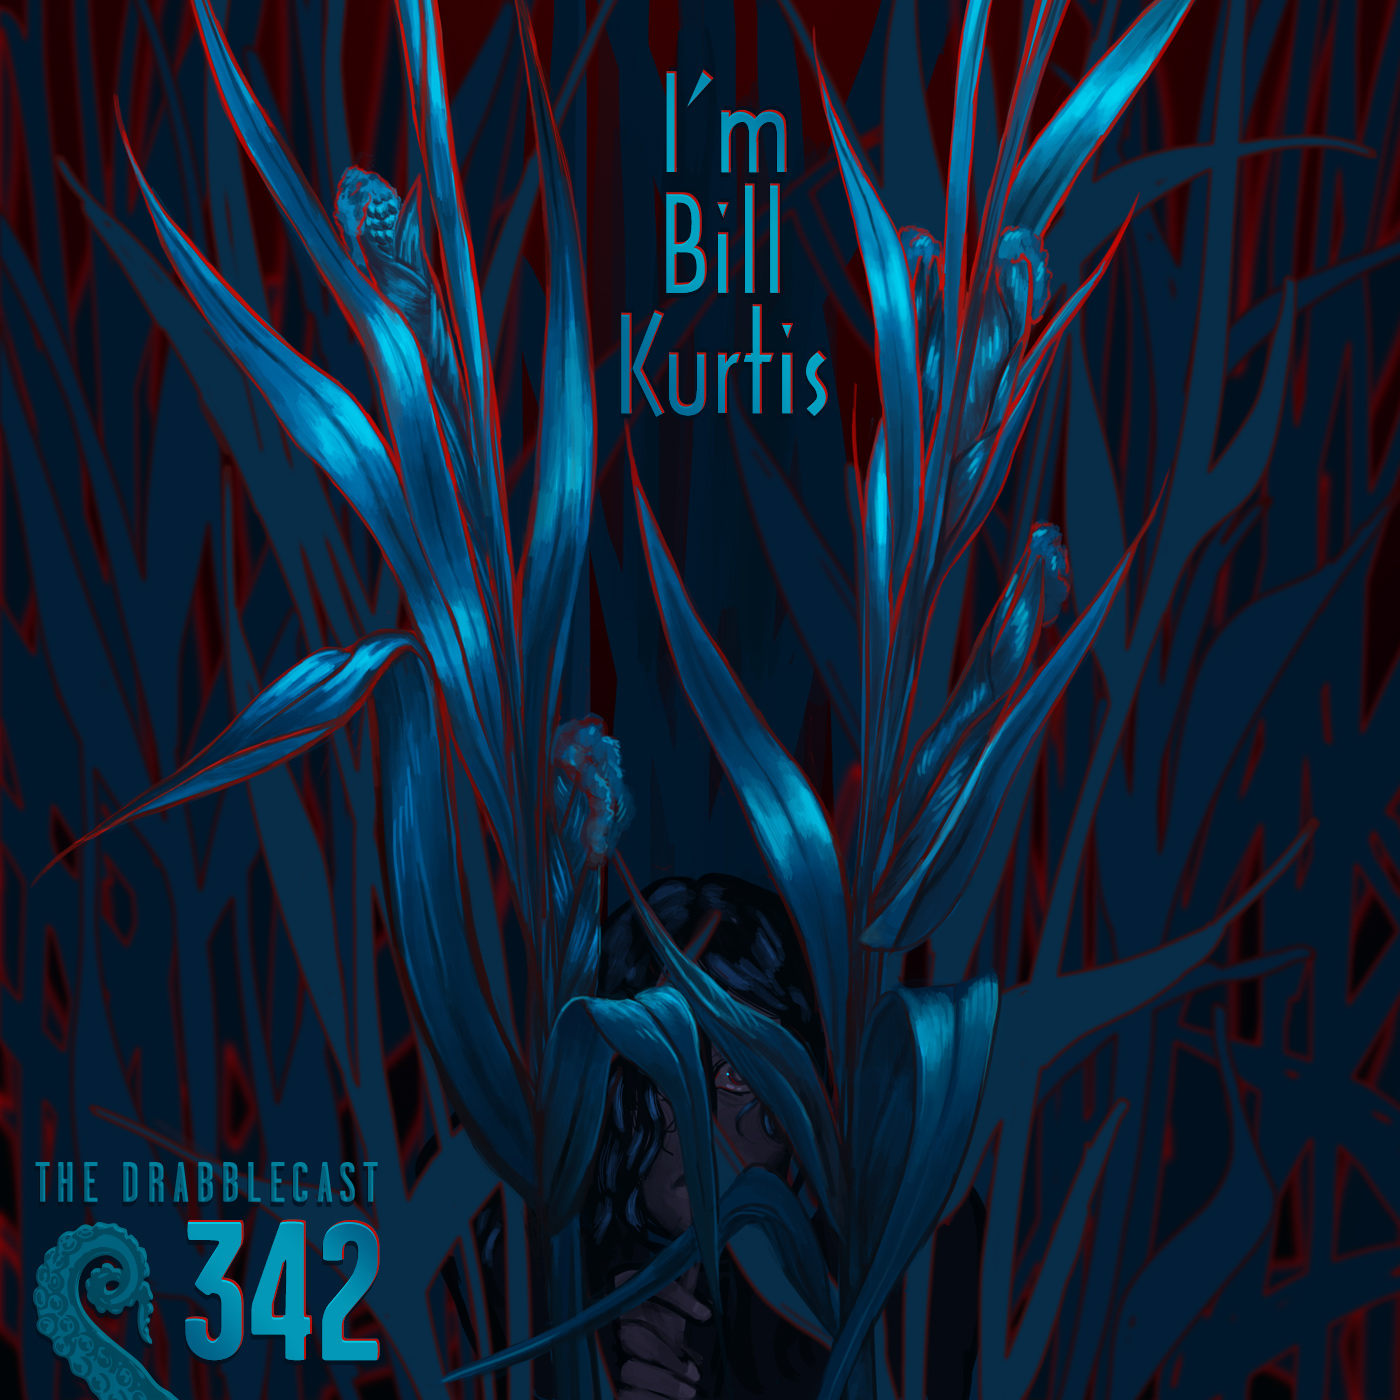 Cover for Drabblecast episode 342, I'm Bill Kurtis, by E. C. Ibes